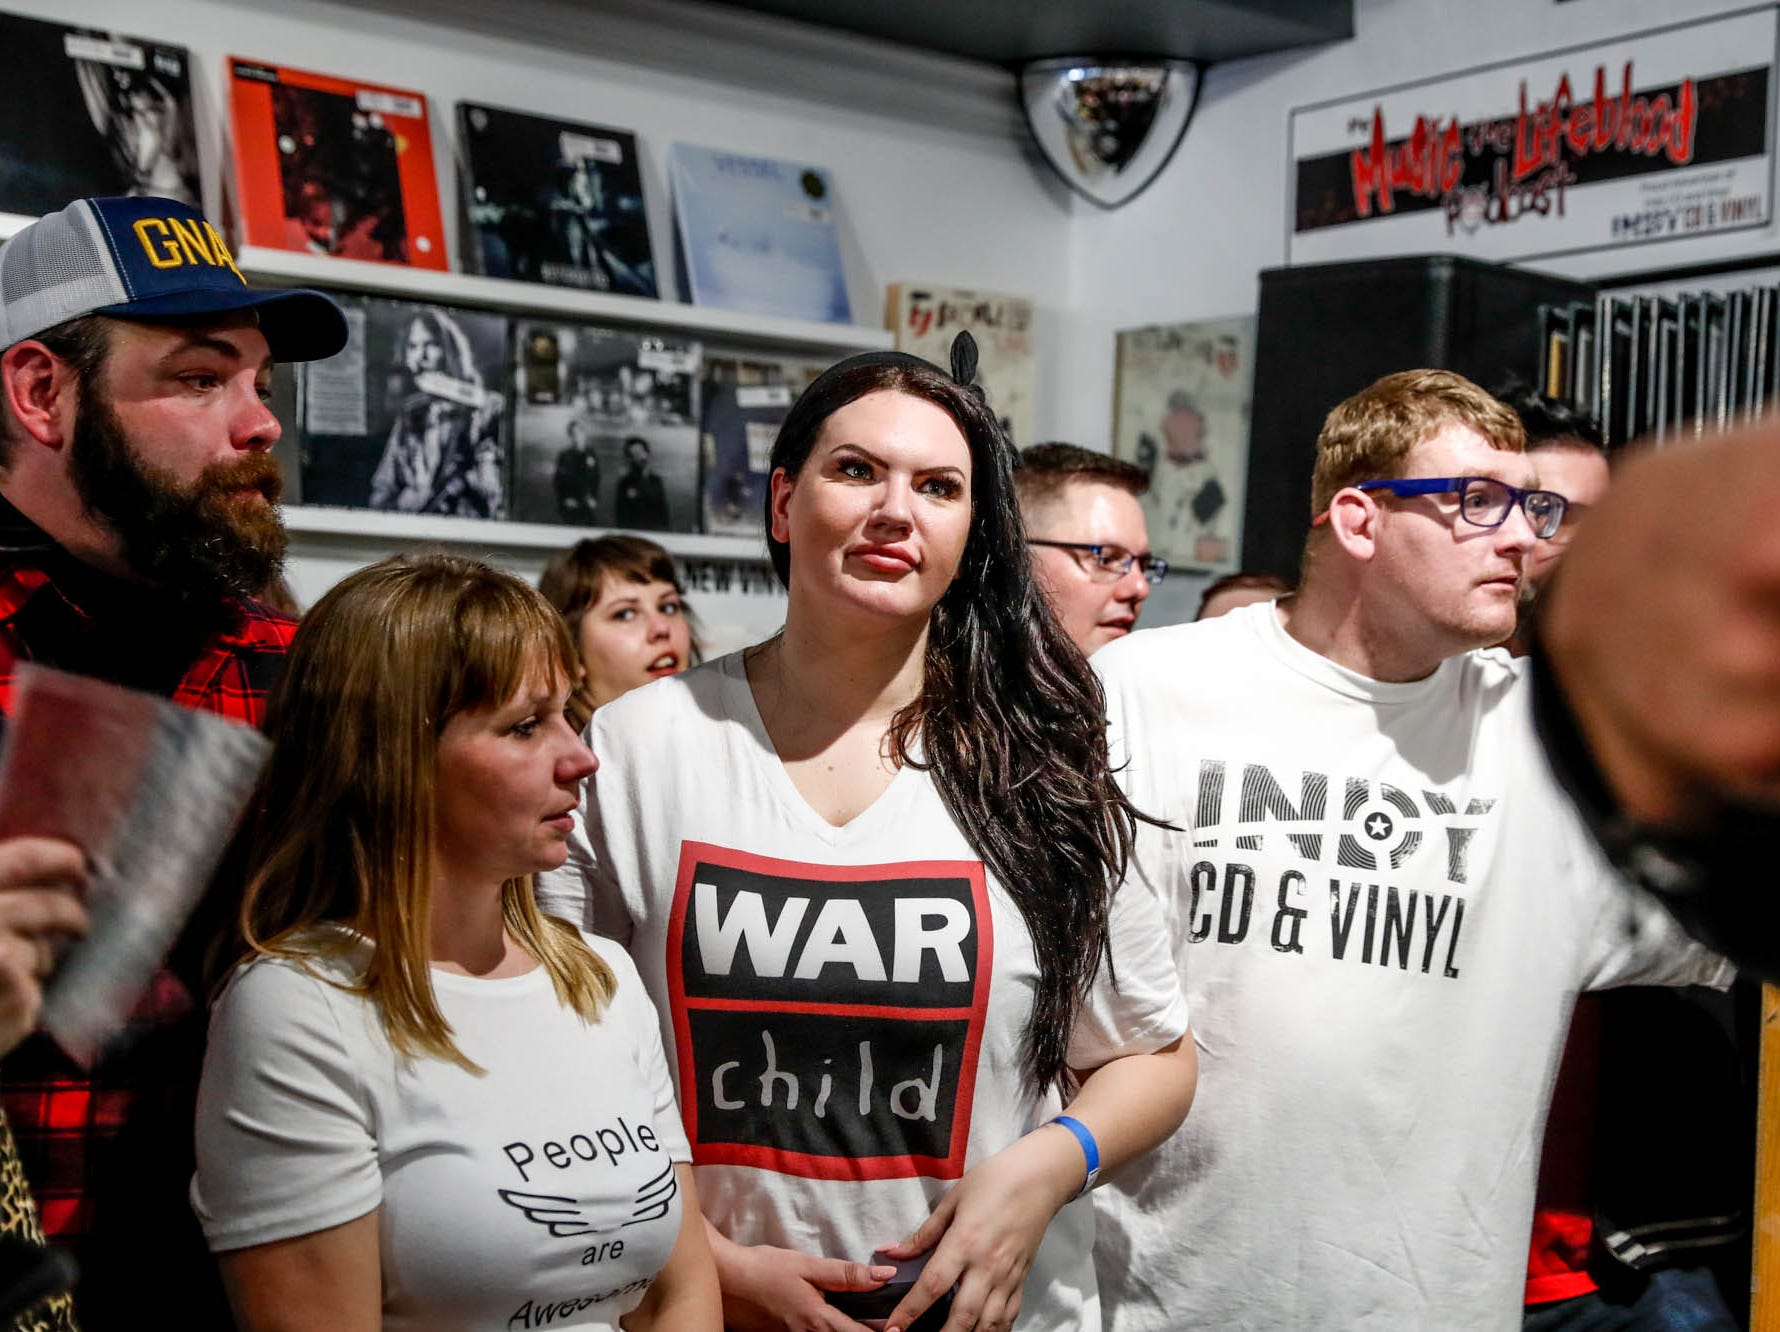 Mumford & Sons fans wait for photos with the band after a special in-store appearance at Indy CD & Vinyl on Monday, March 25, 2019.